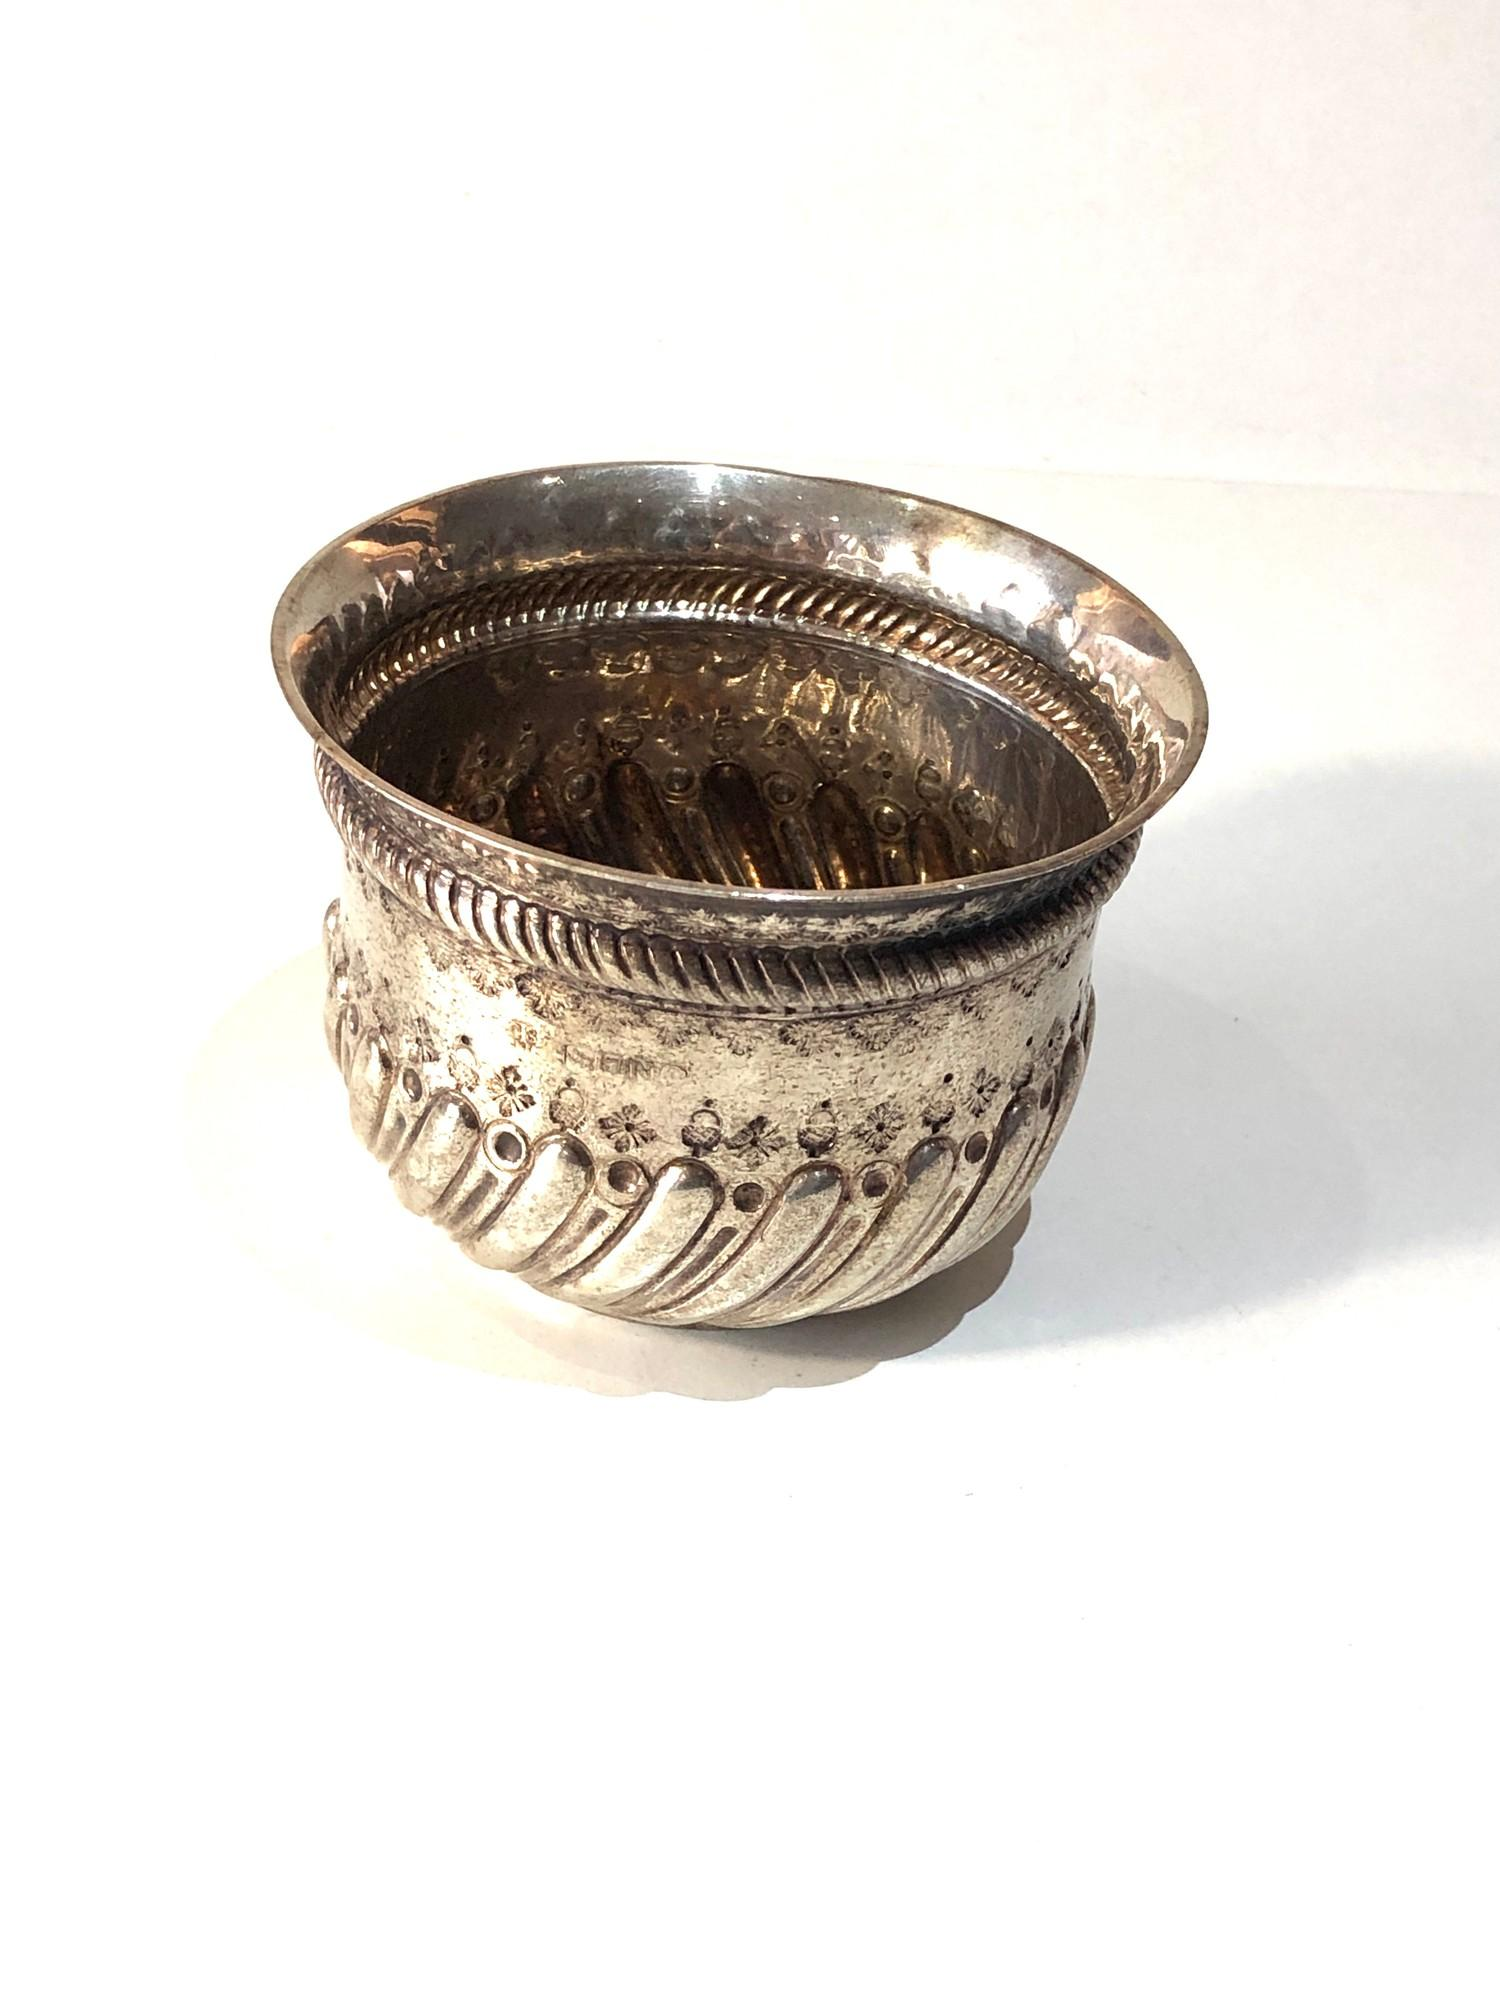 Antique victorian silver bowl with coin insert measures approx 9cm dia height 6.2cm London silver